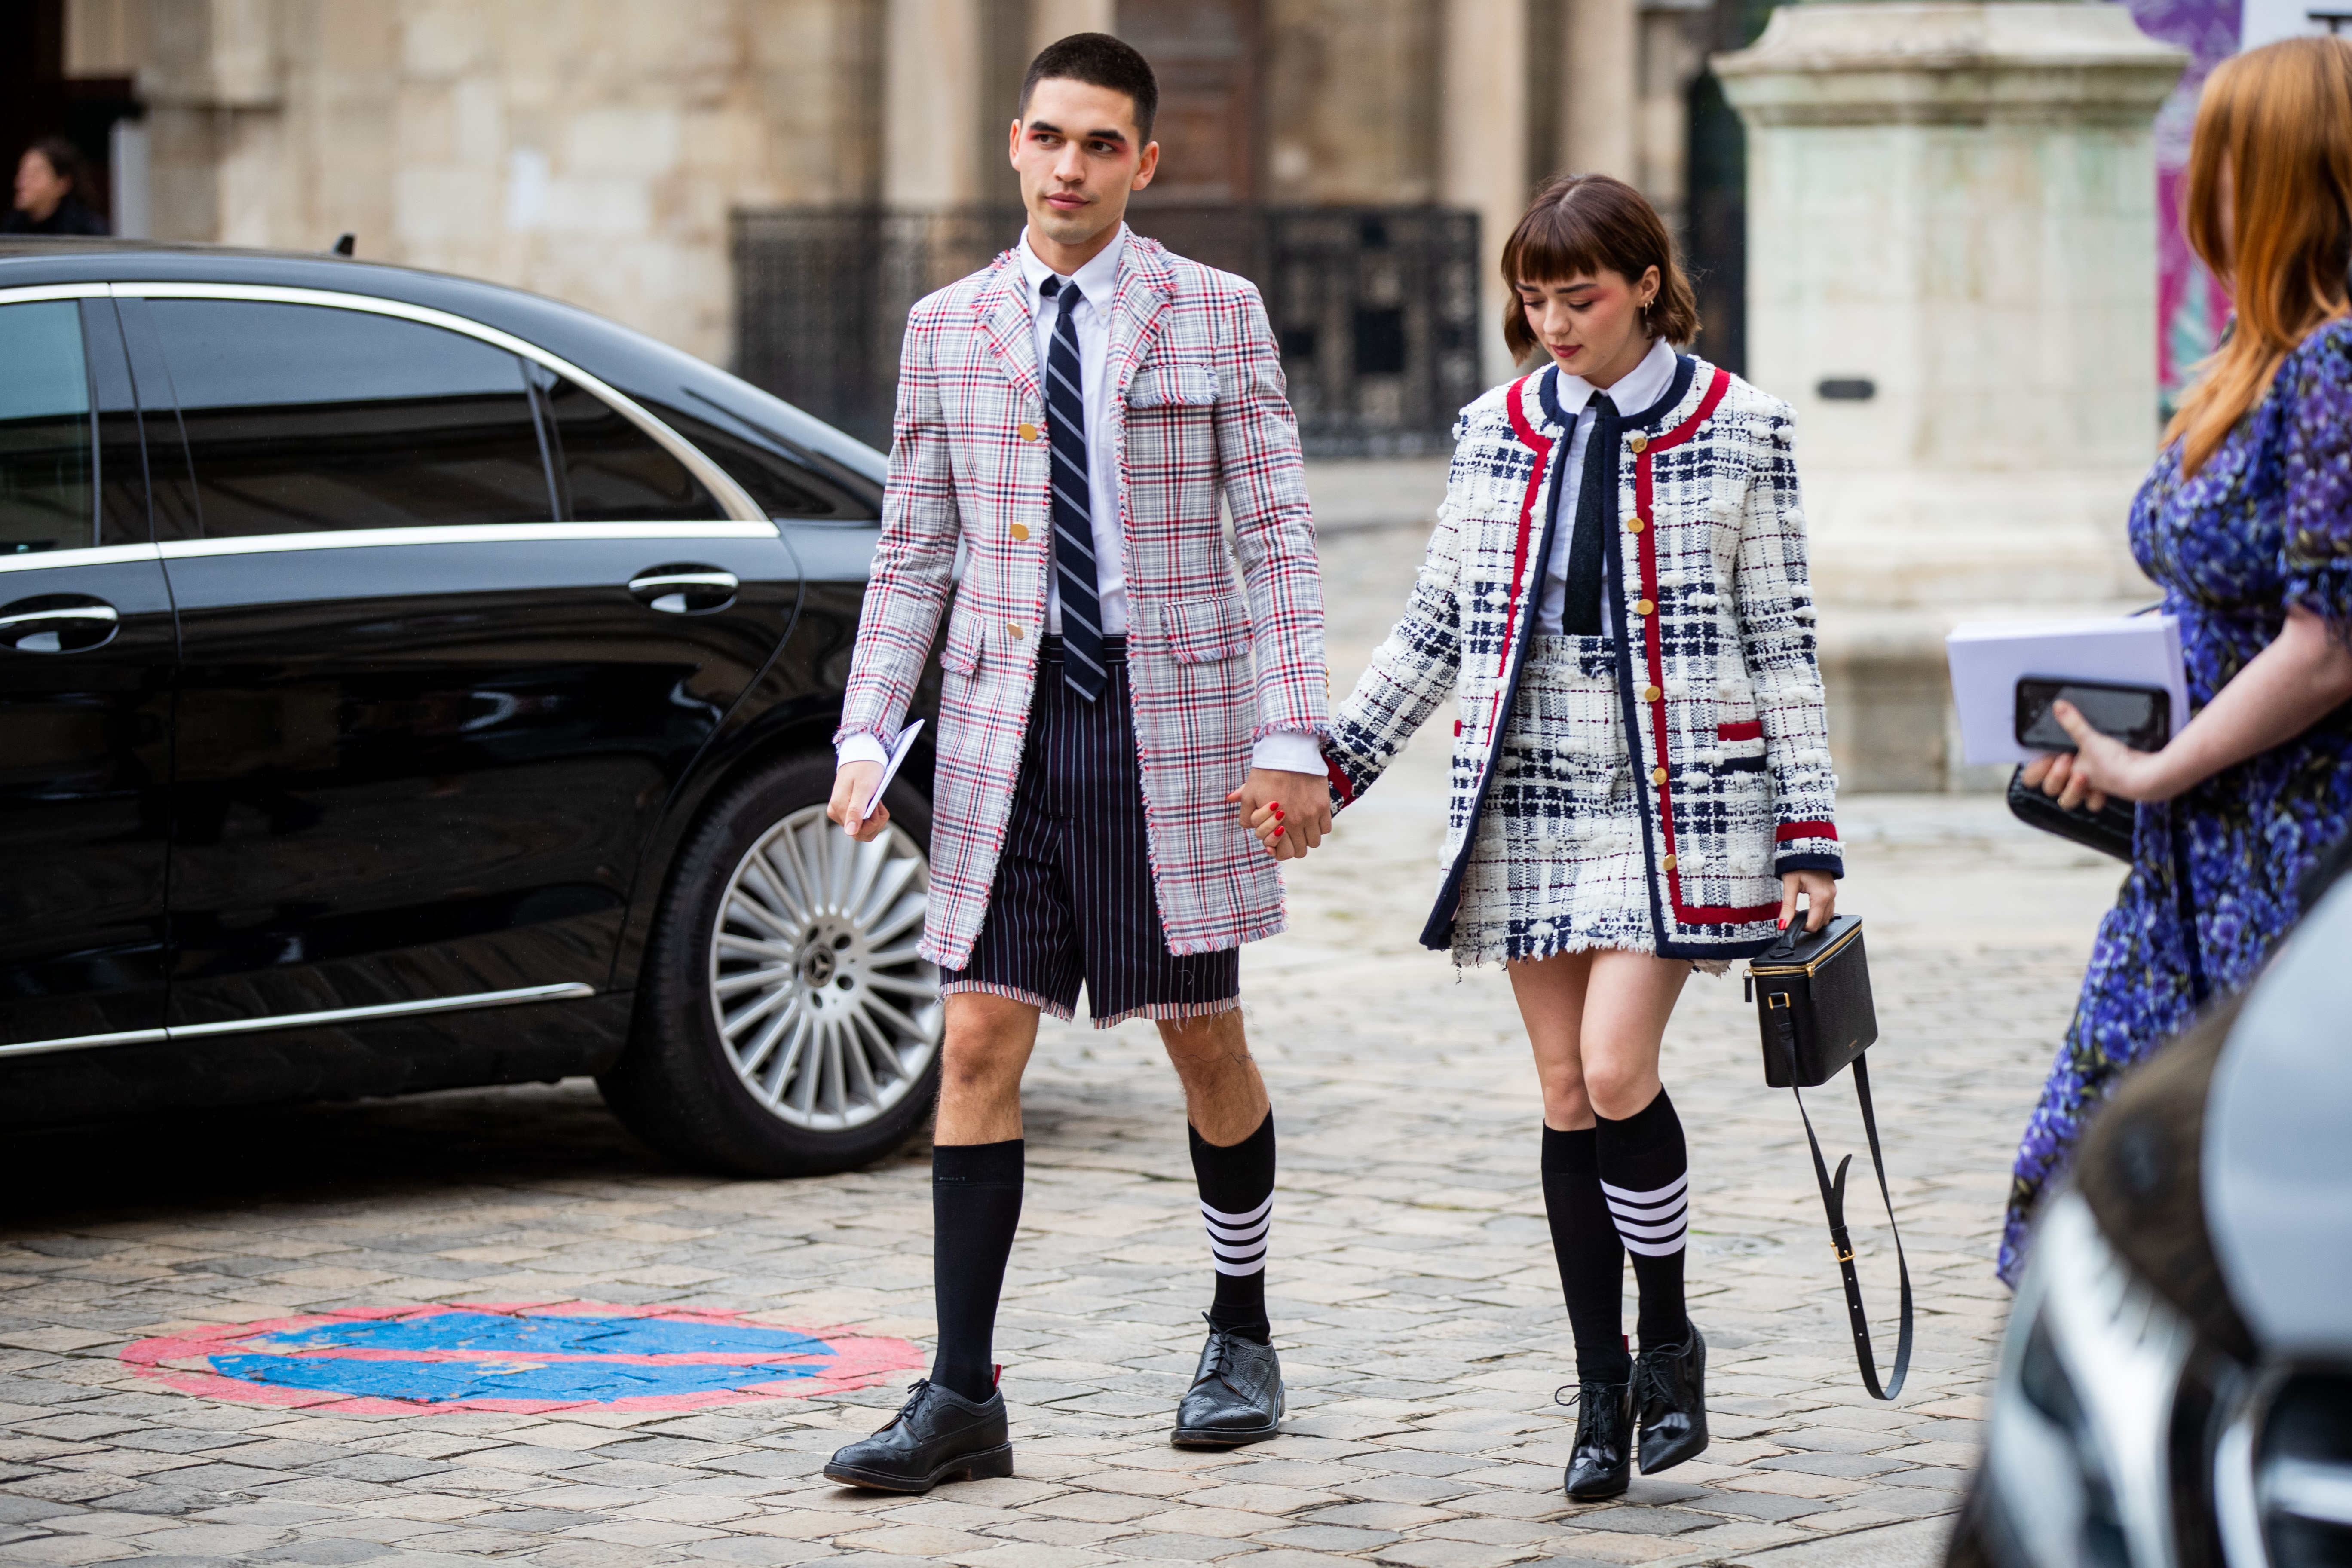 Maisie Williams  Reuben Selby Paris Fashion Week Couple Style